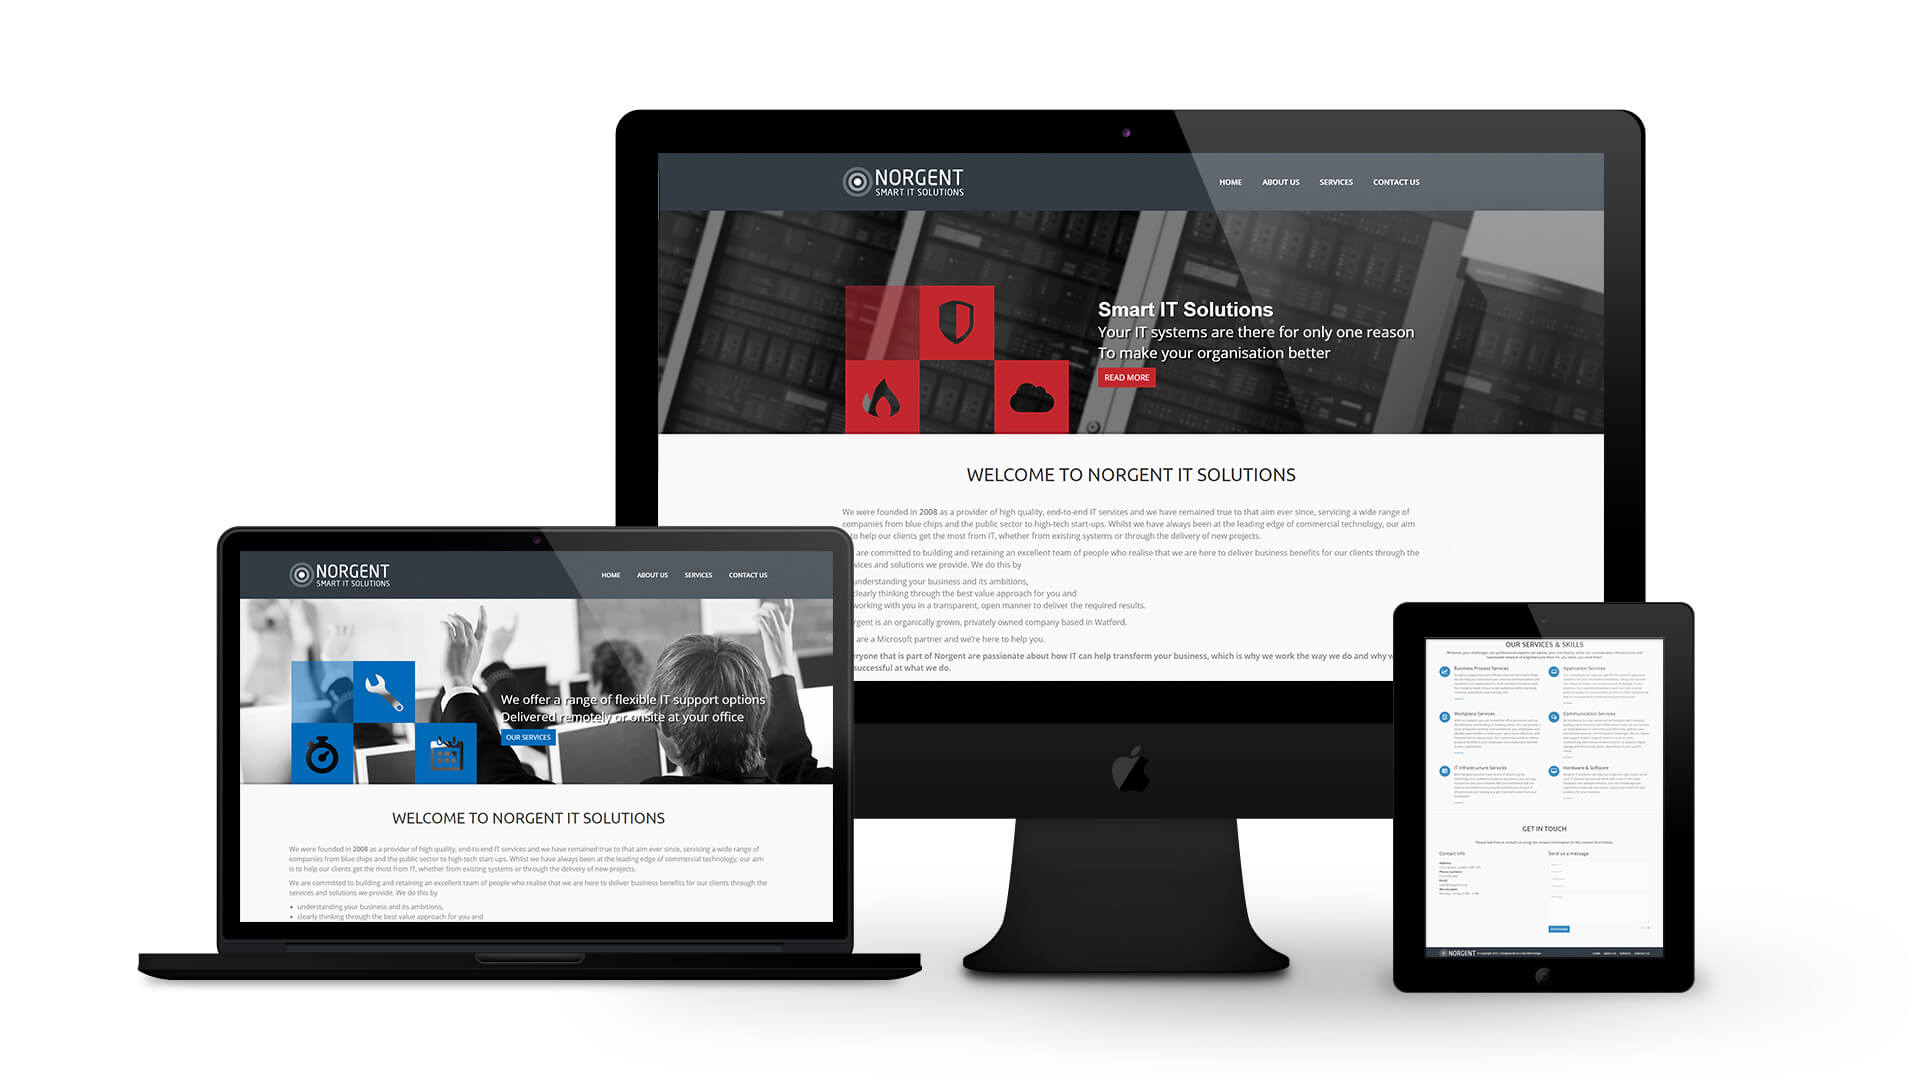 Norgent IT Services - By Ice Cube Web Design